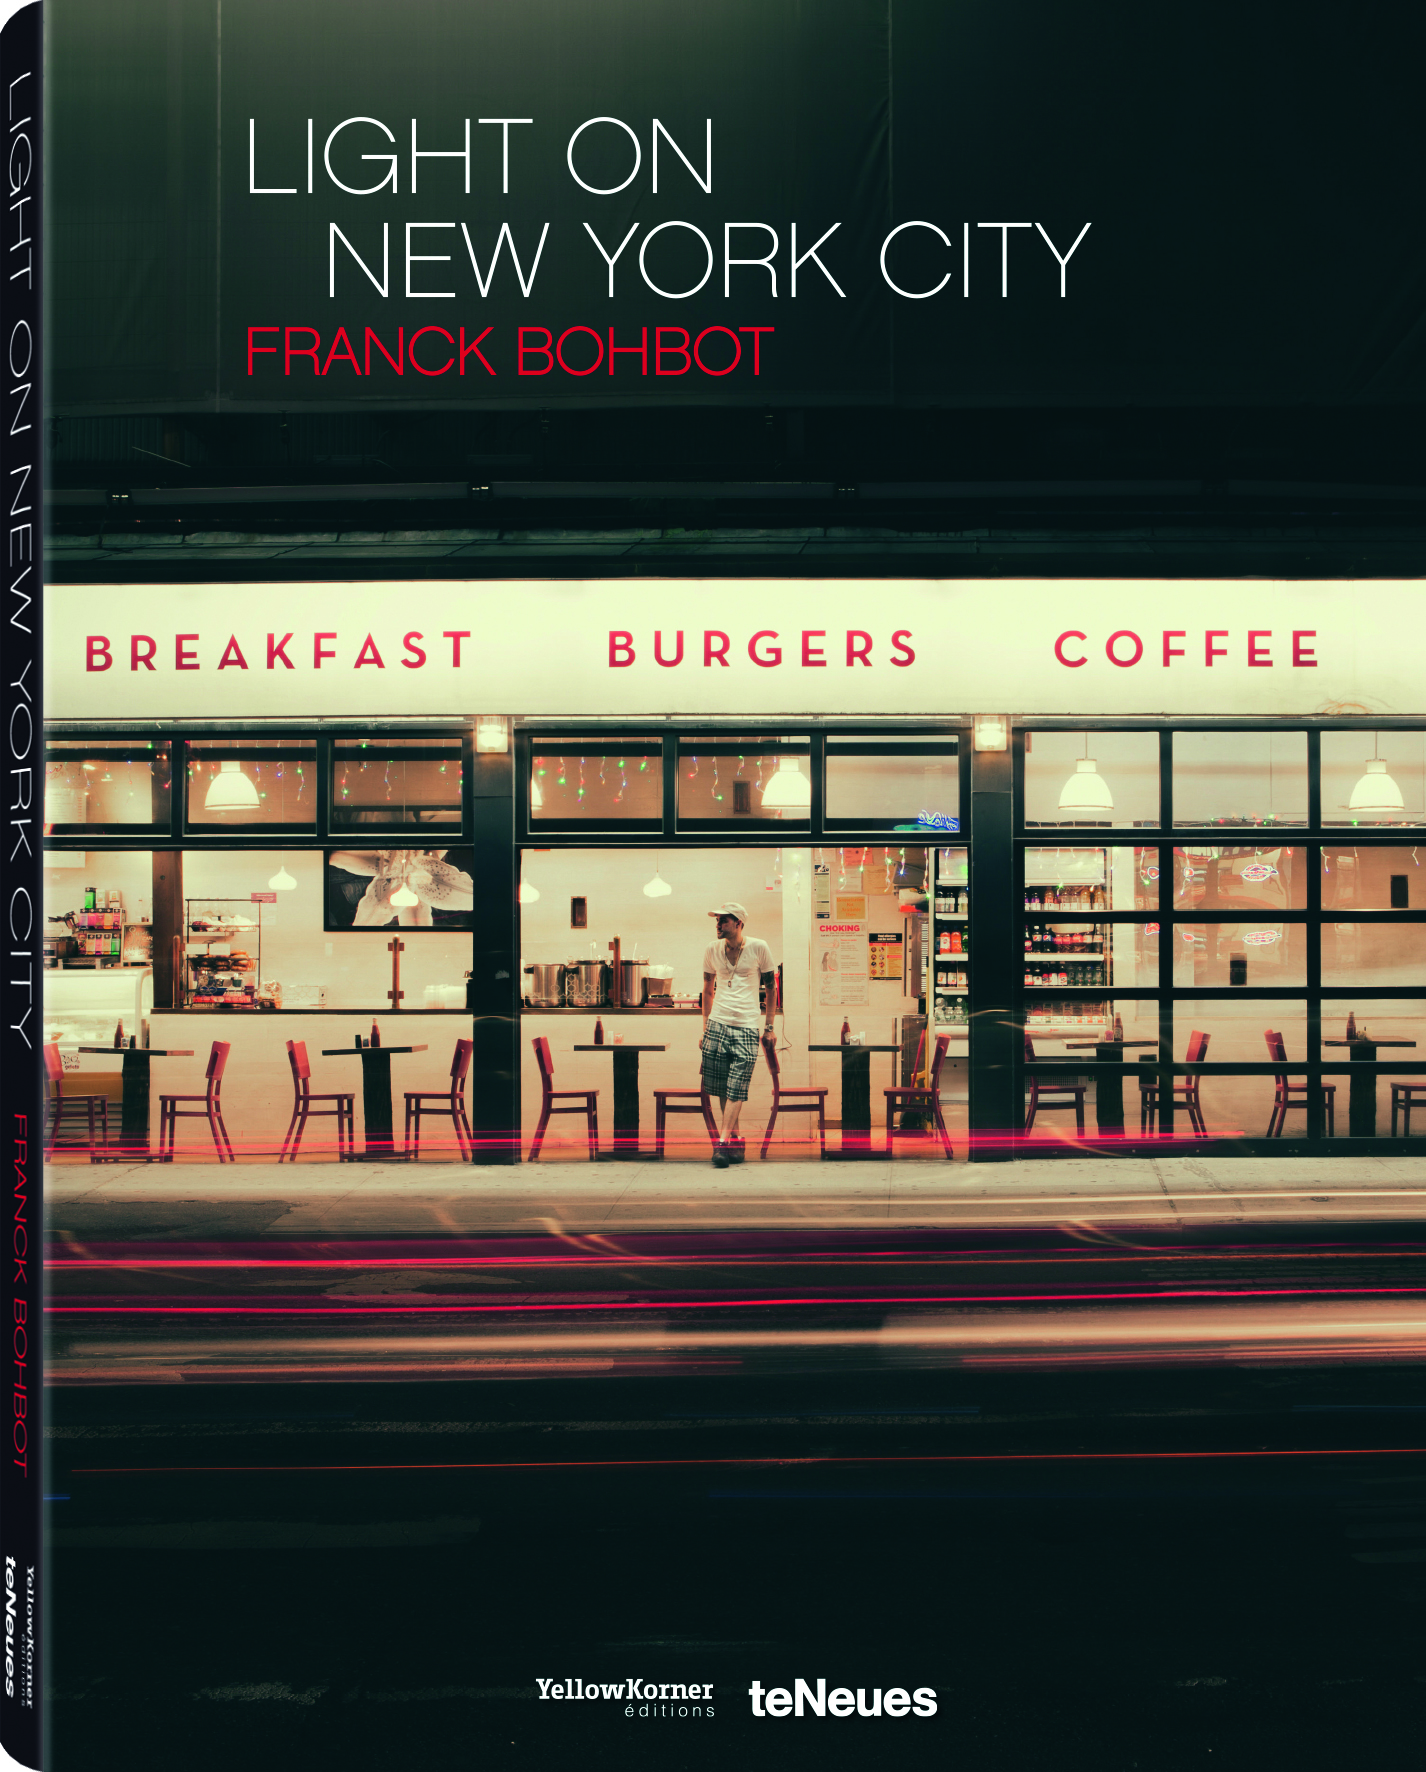 © Light On New City by Franck Bohbot, to be published by teNeues and YellowKorner in August 2016, € 49,90 - www.teneues.com, www.yellowkorner.com. Sugar Café, Lower East Side, Manhattan, 2013, Photo © 2016 Franck Bohbot/INSTITUTE. All rights reserved. www.instituteartist.com